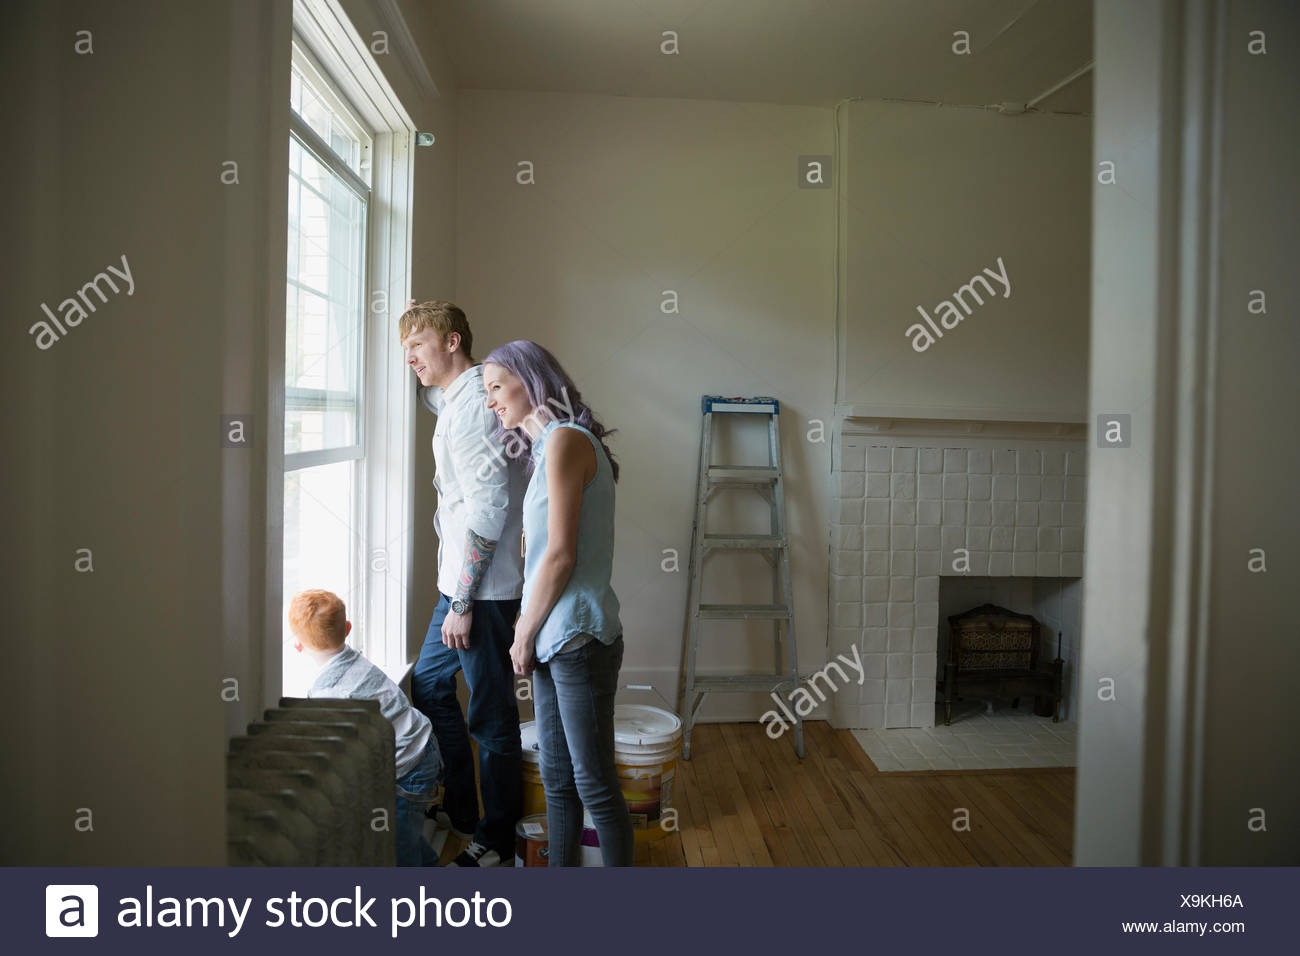 Young family looking out window in new house - Stock Image